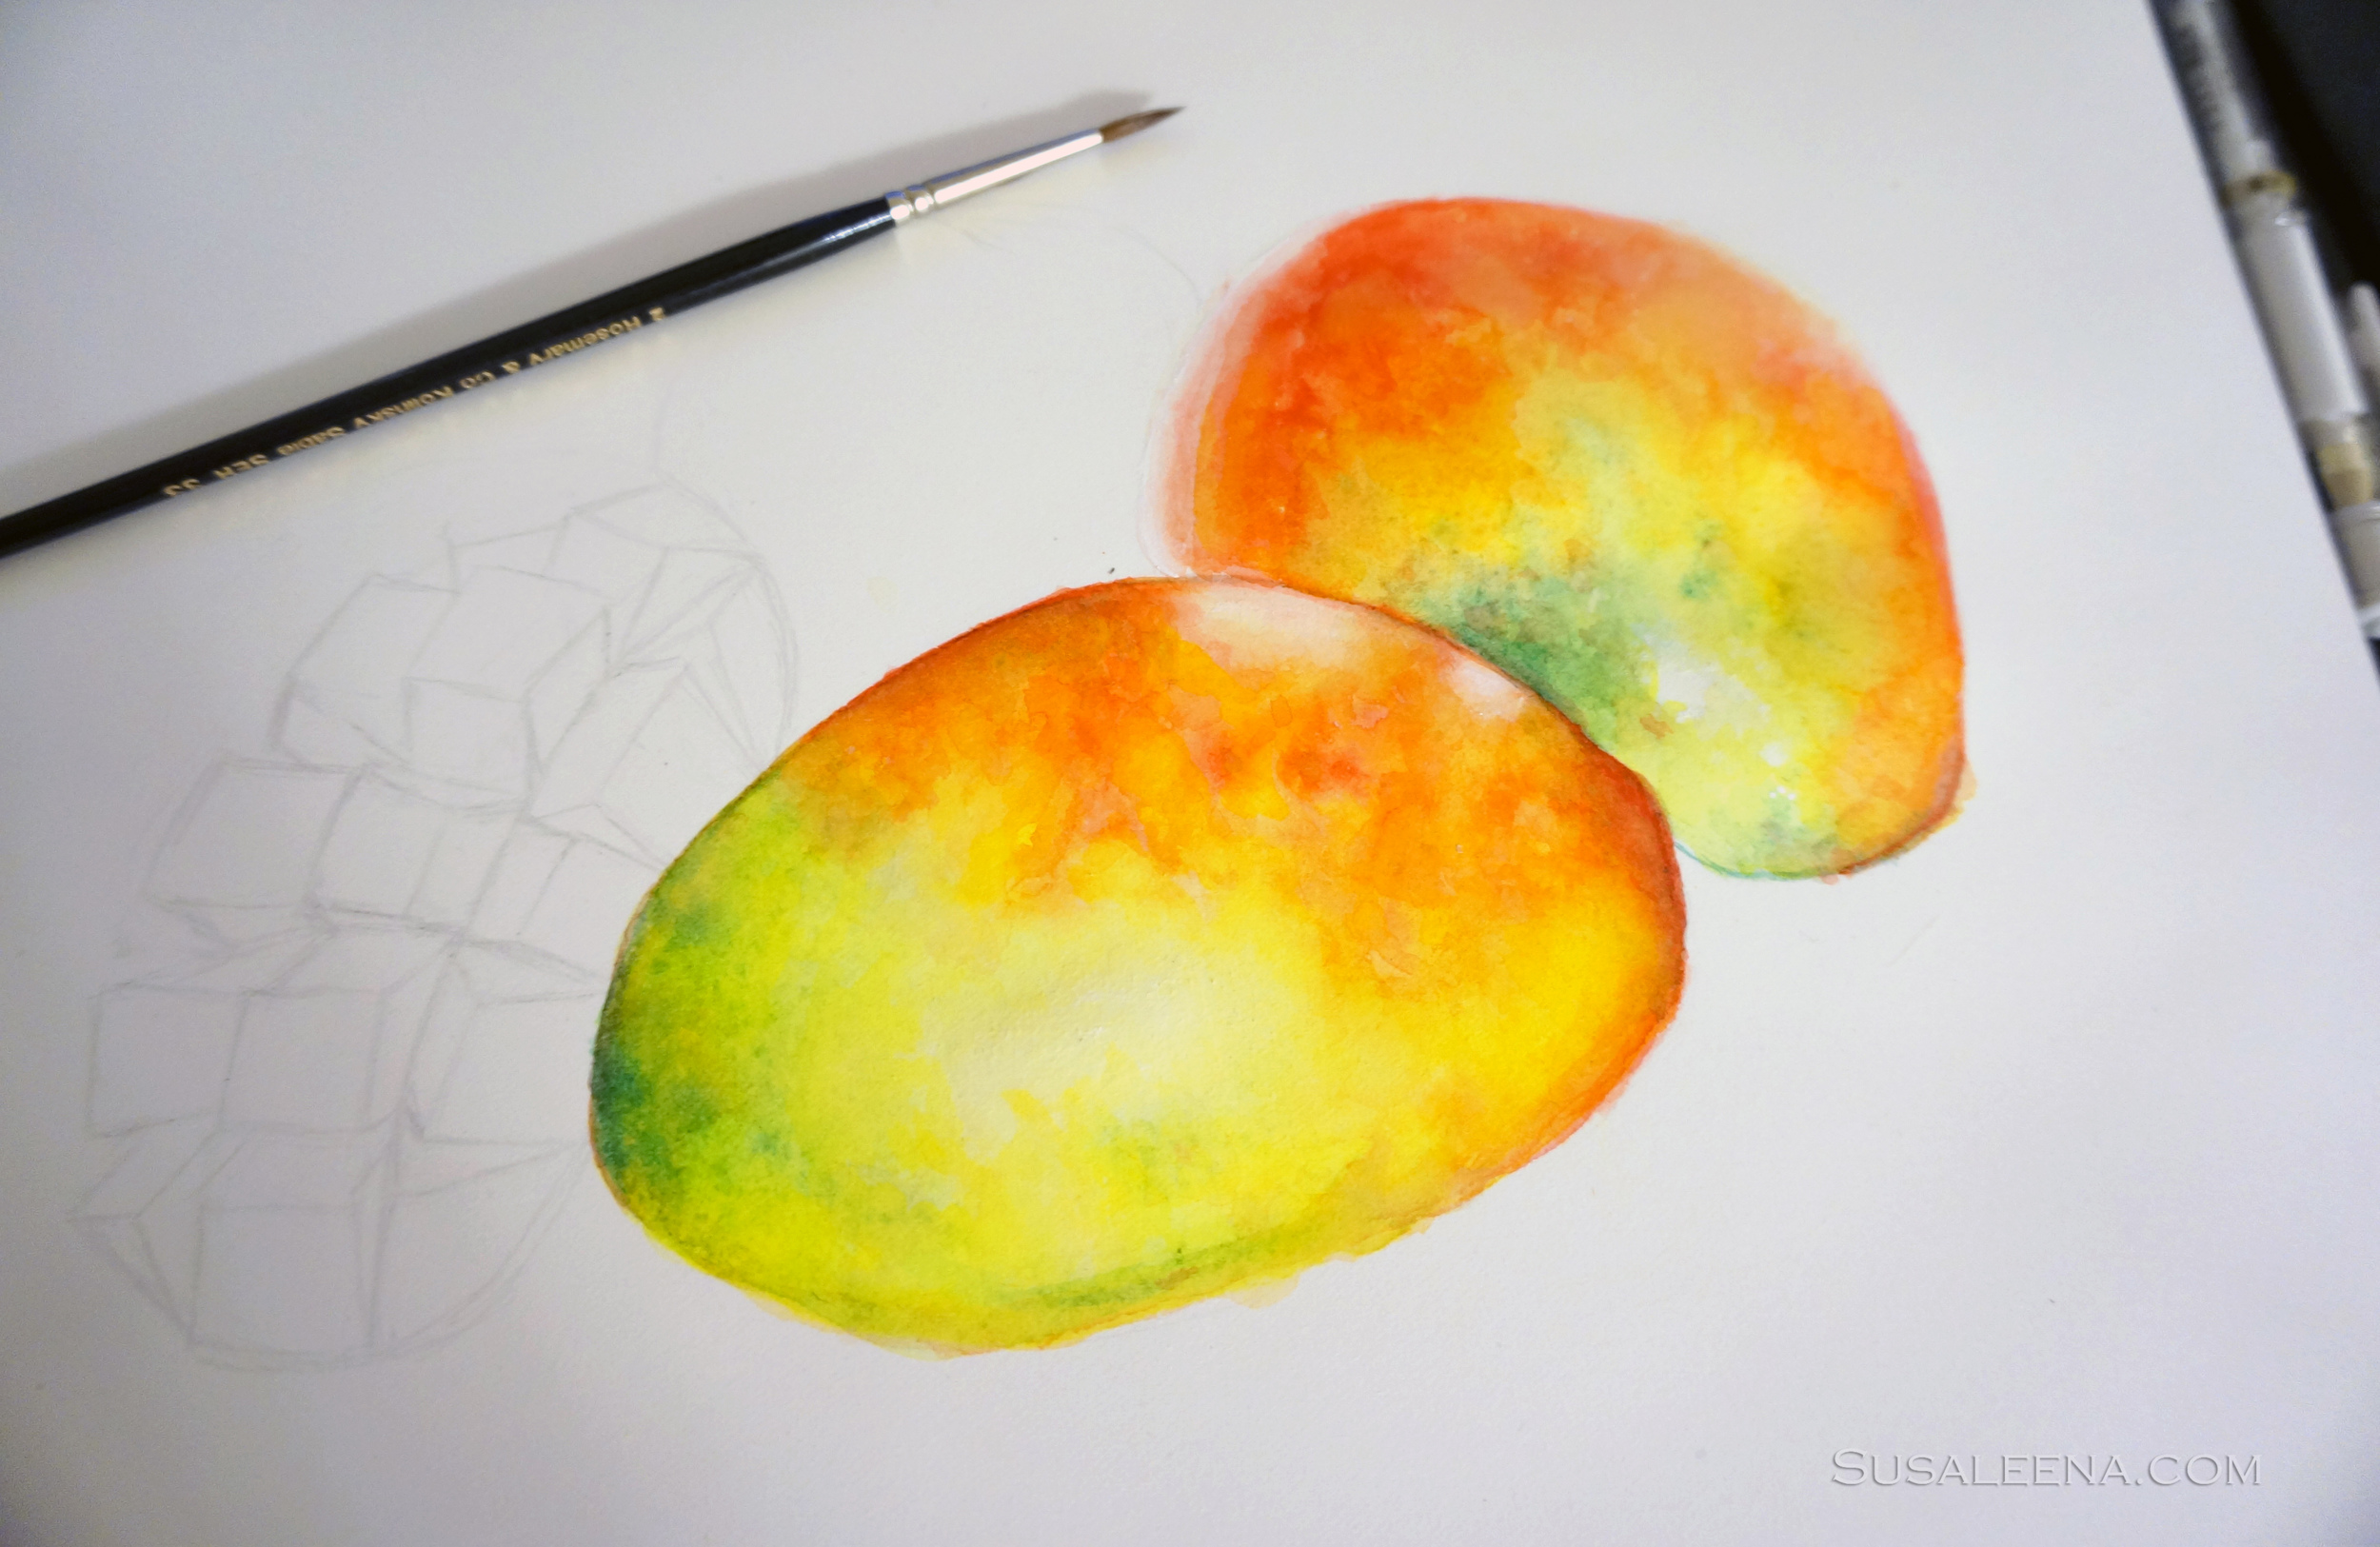 Painting fruits always makes me crave some...delicious!